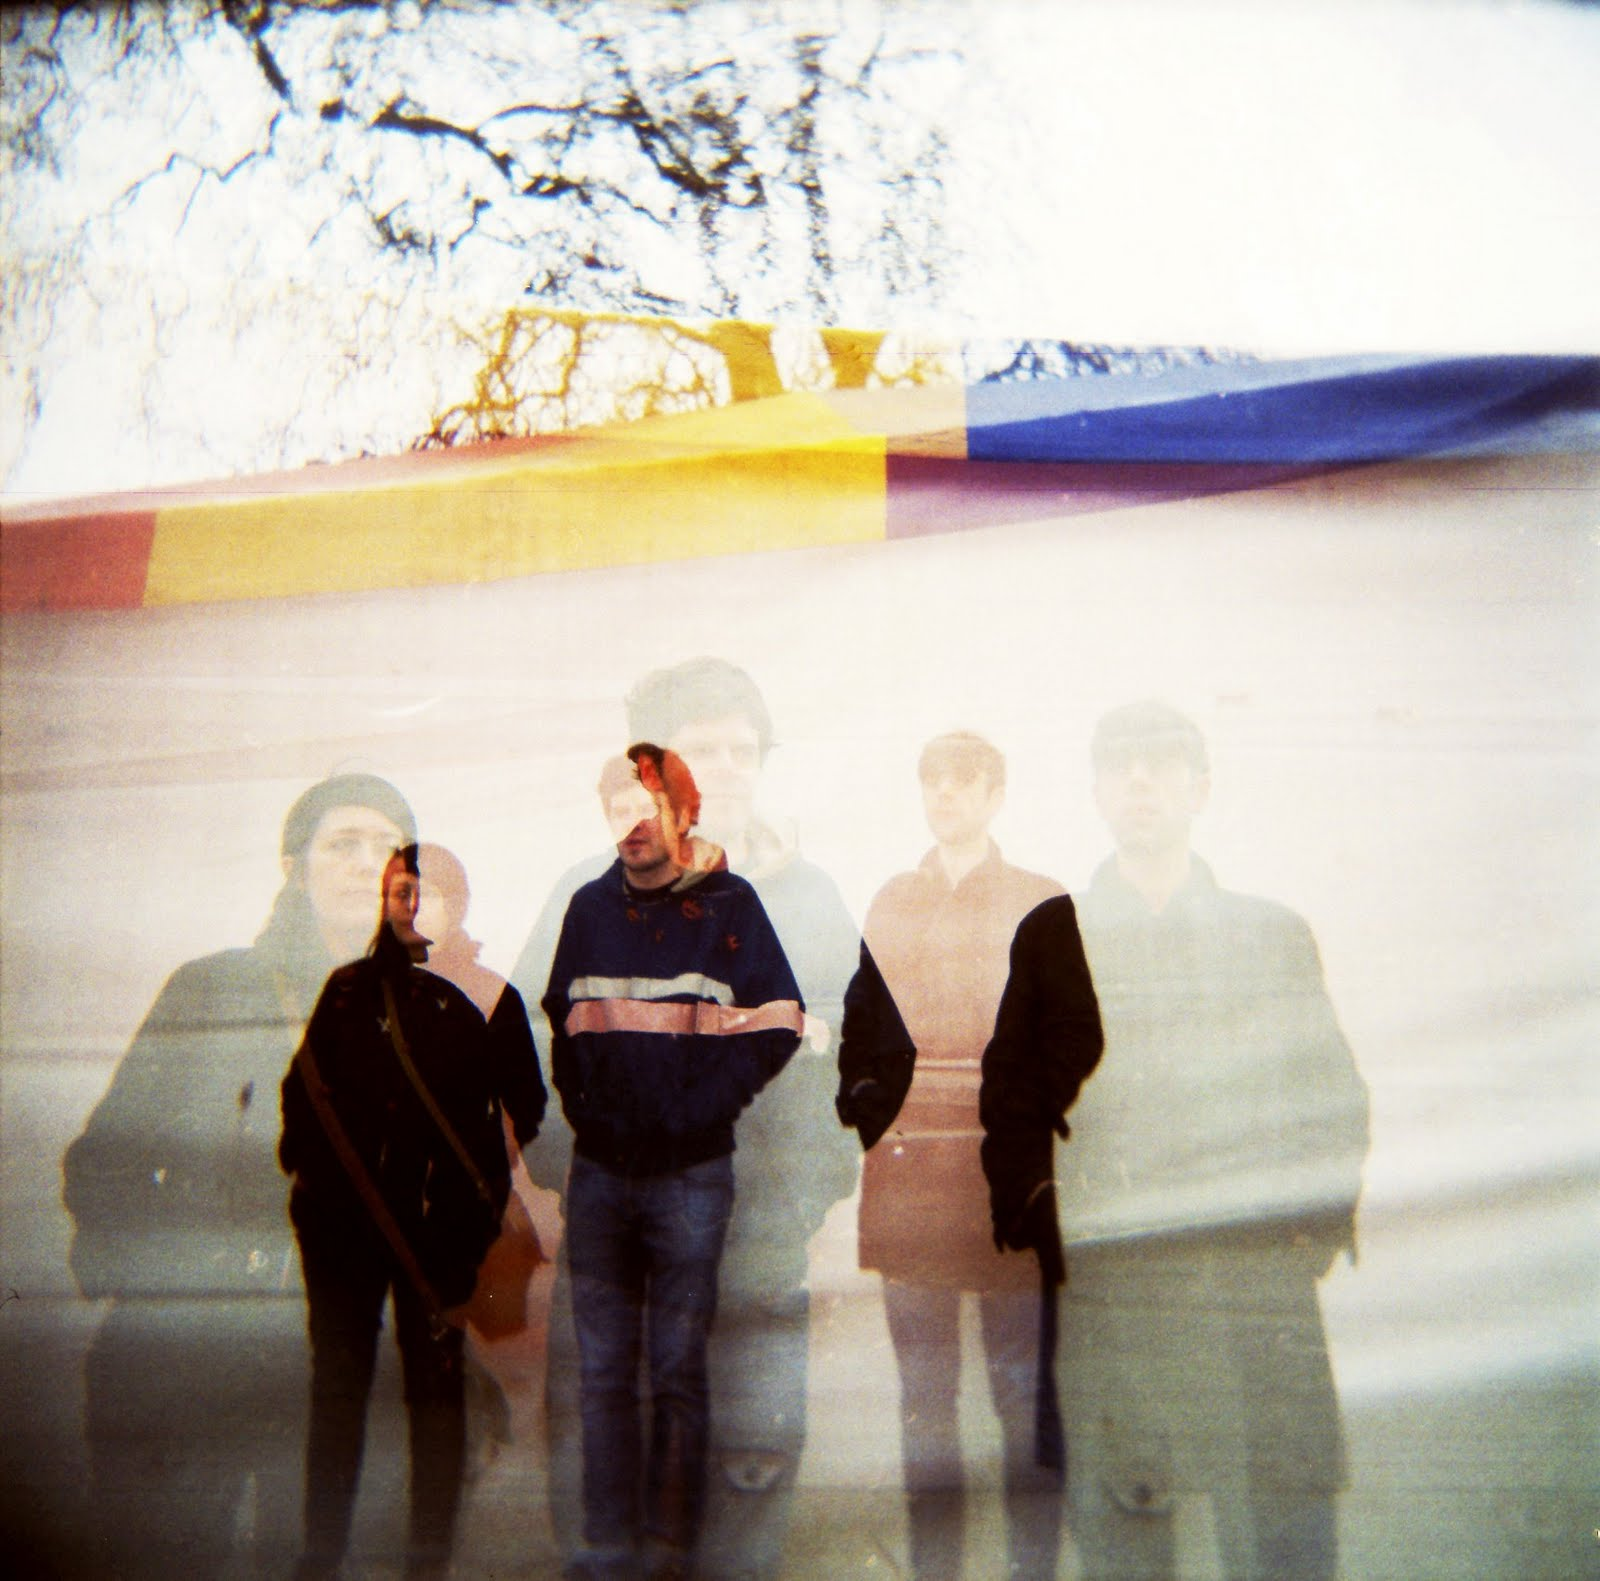 Girls Names get remixed by Factory floor's Gabe gurnsey, catch them on tour in Europe this summer